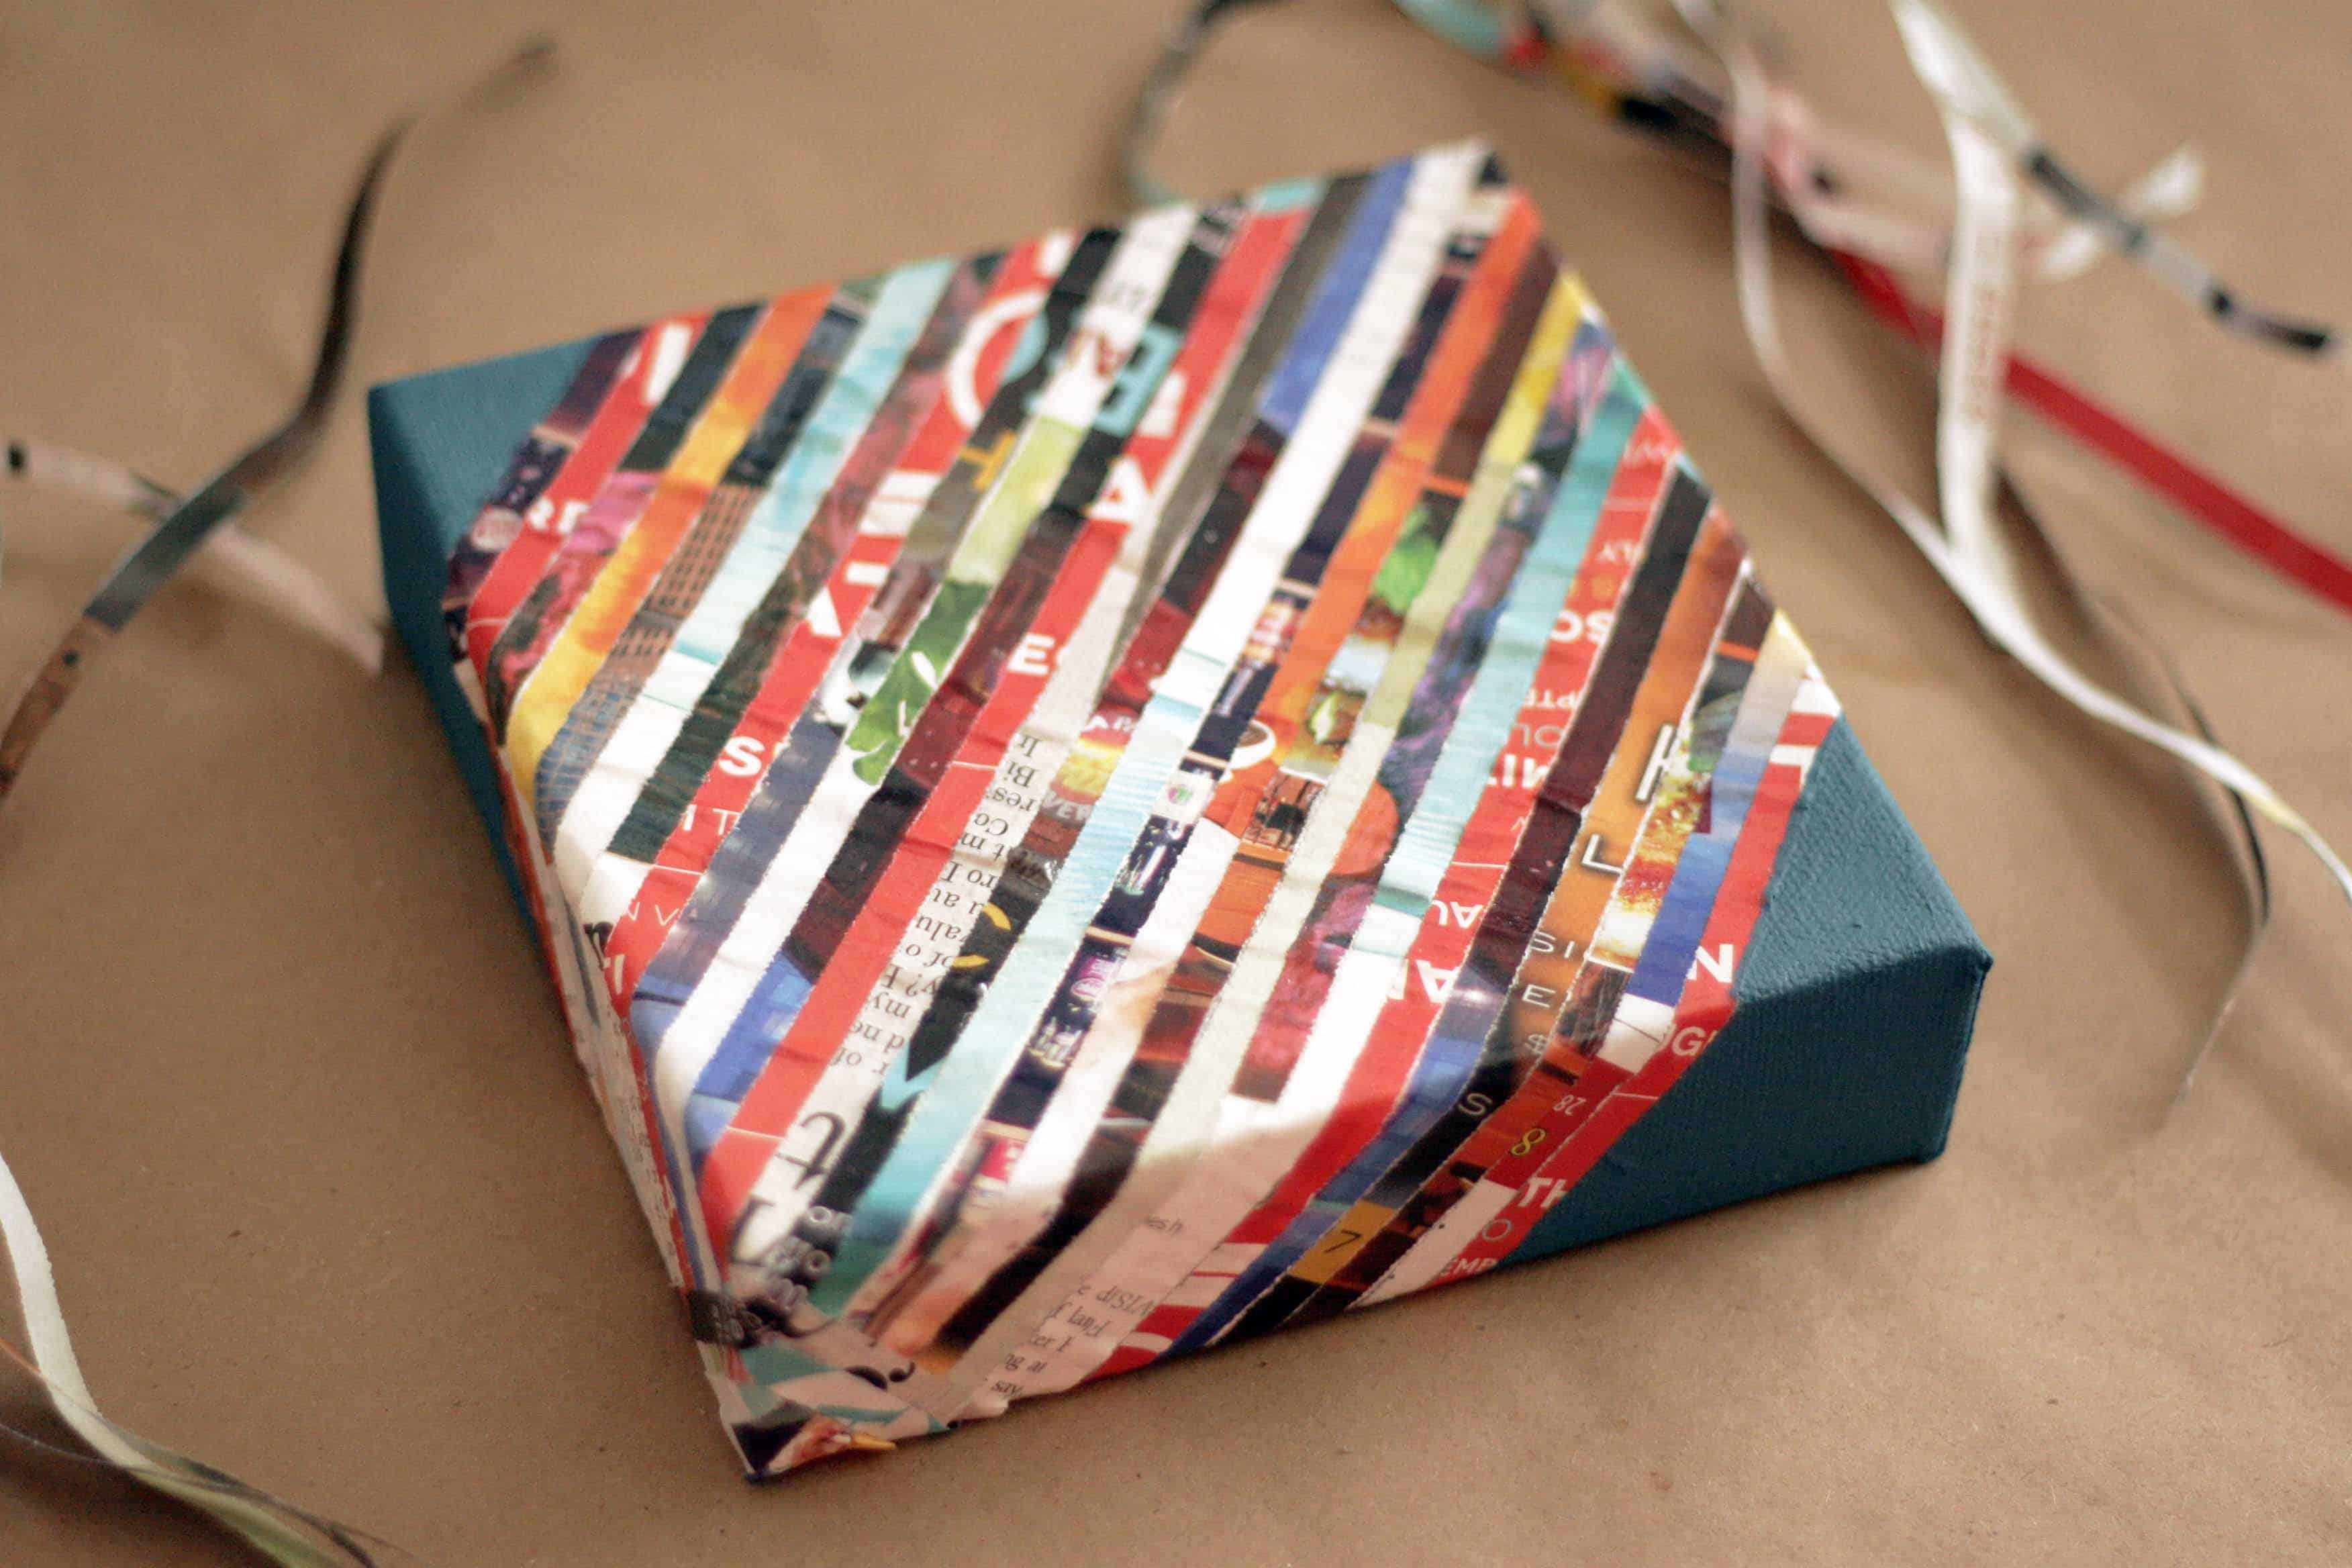 Cut paste and innovate magazine collage ideas 7 magazine strip gift wrap box solutioingenieria Image collections